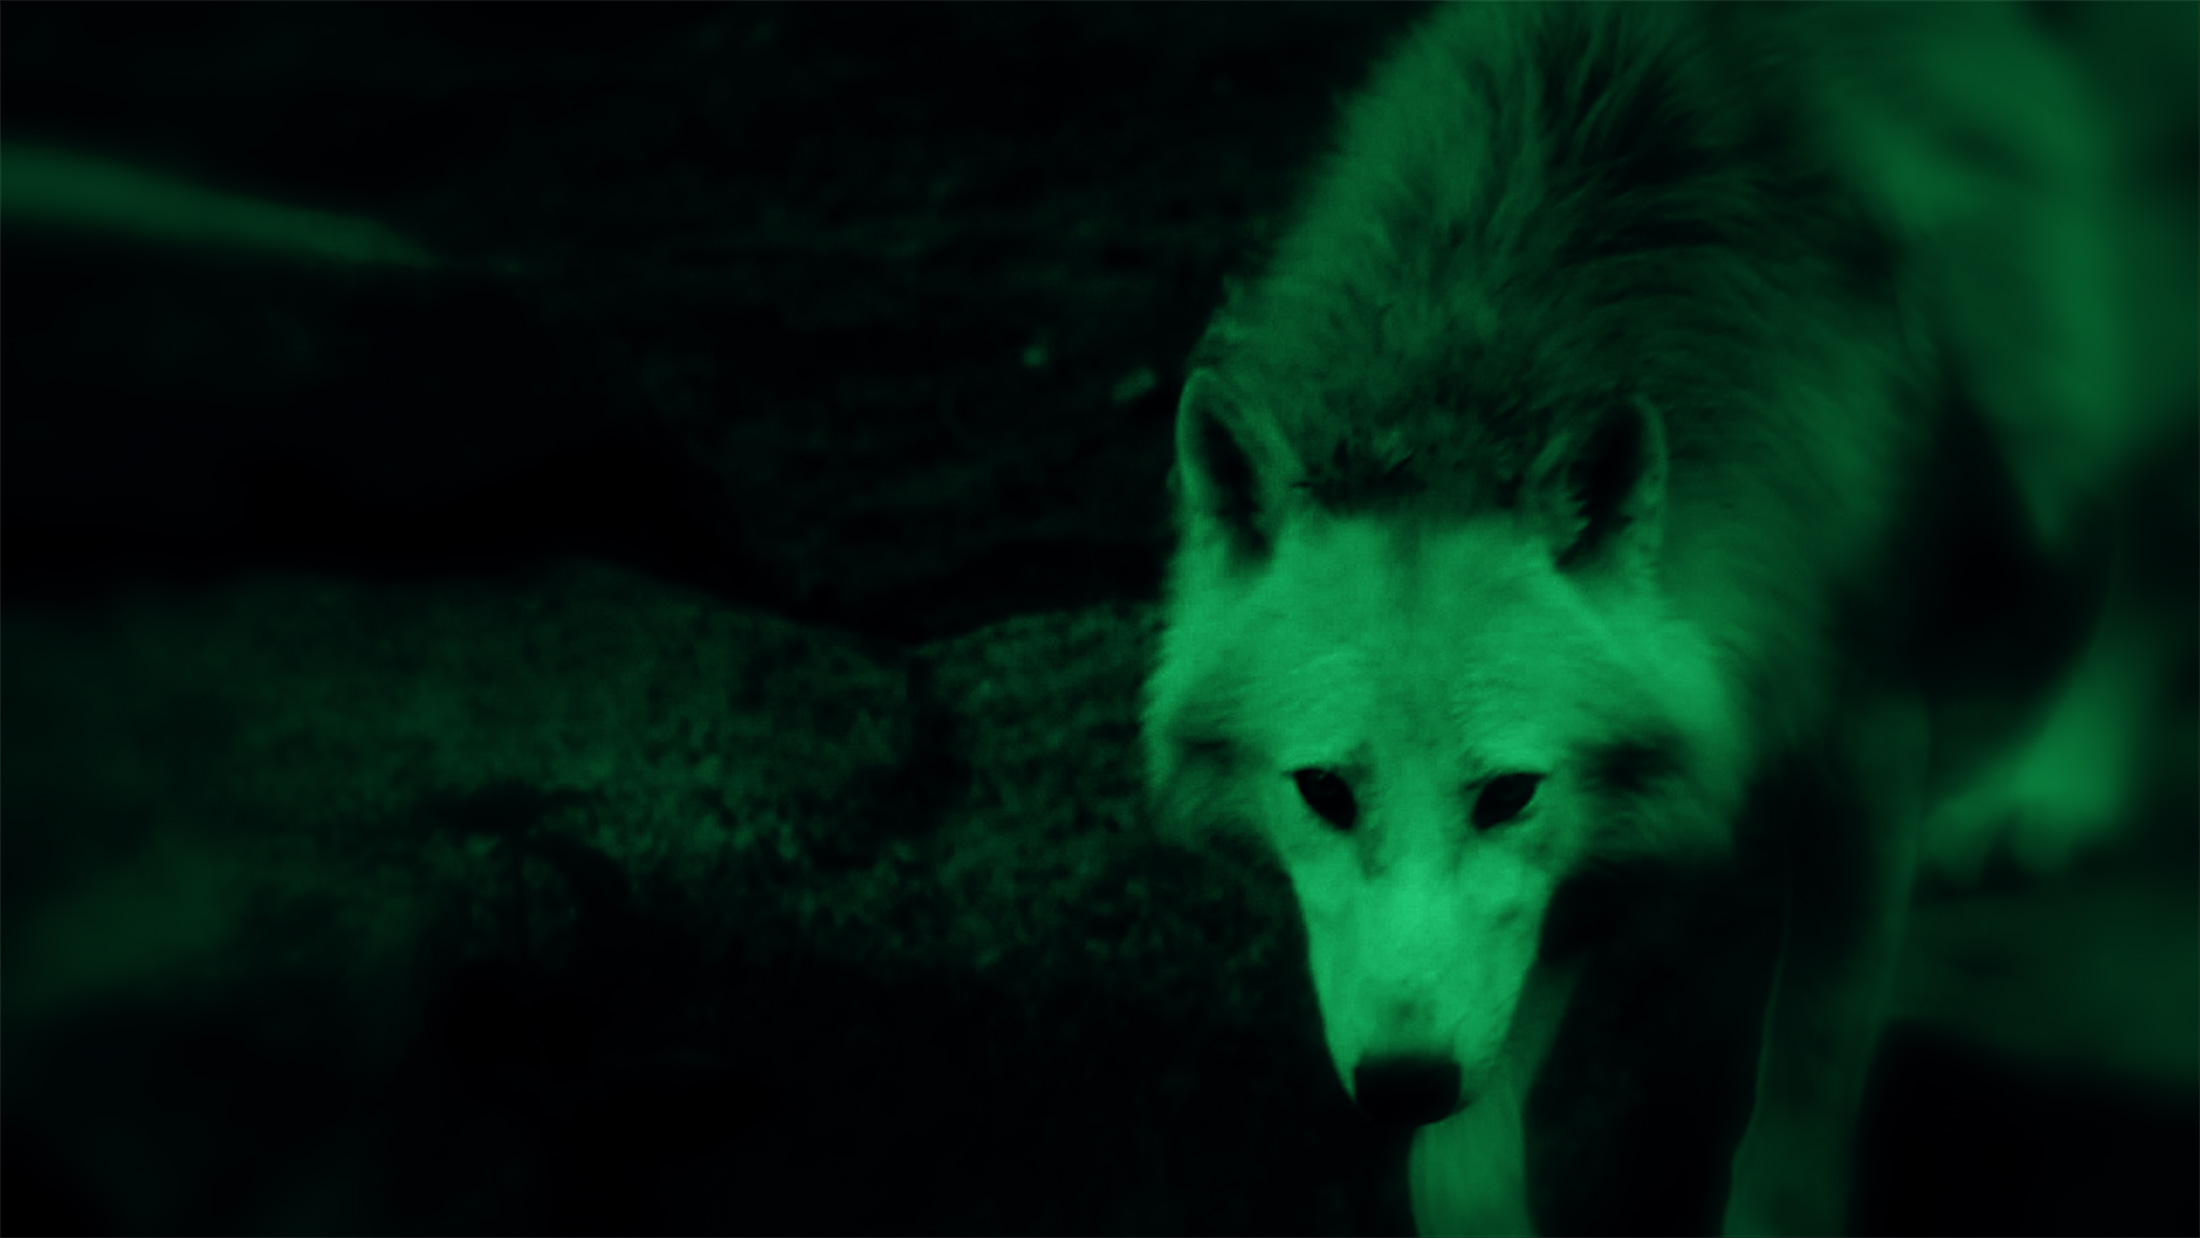 Mali Weil - Animal spirits - video wolf